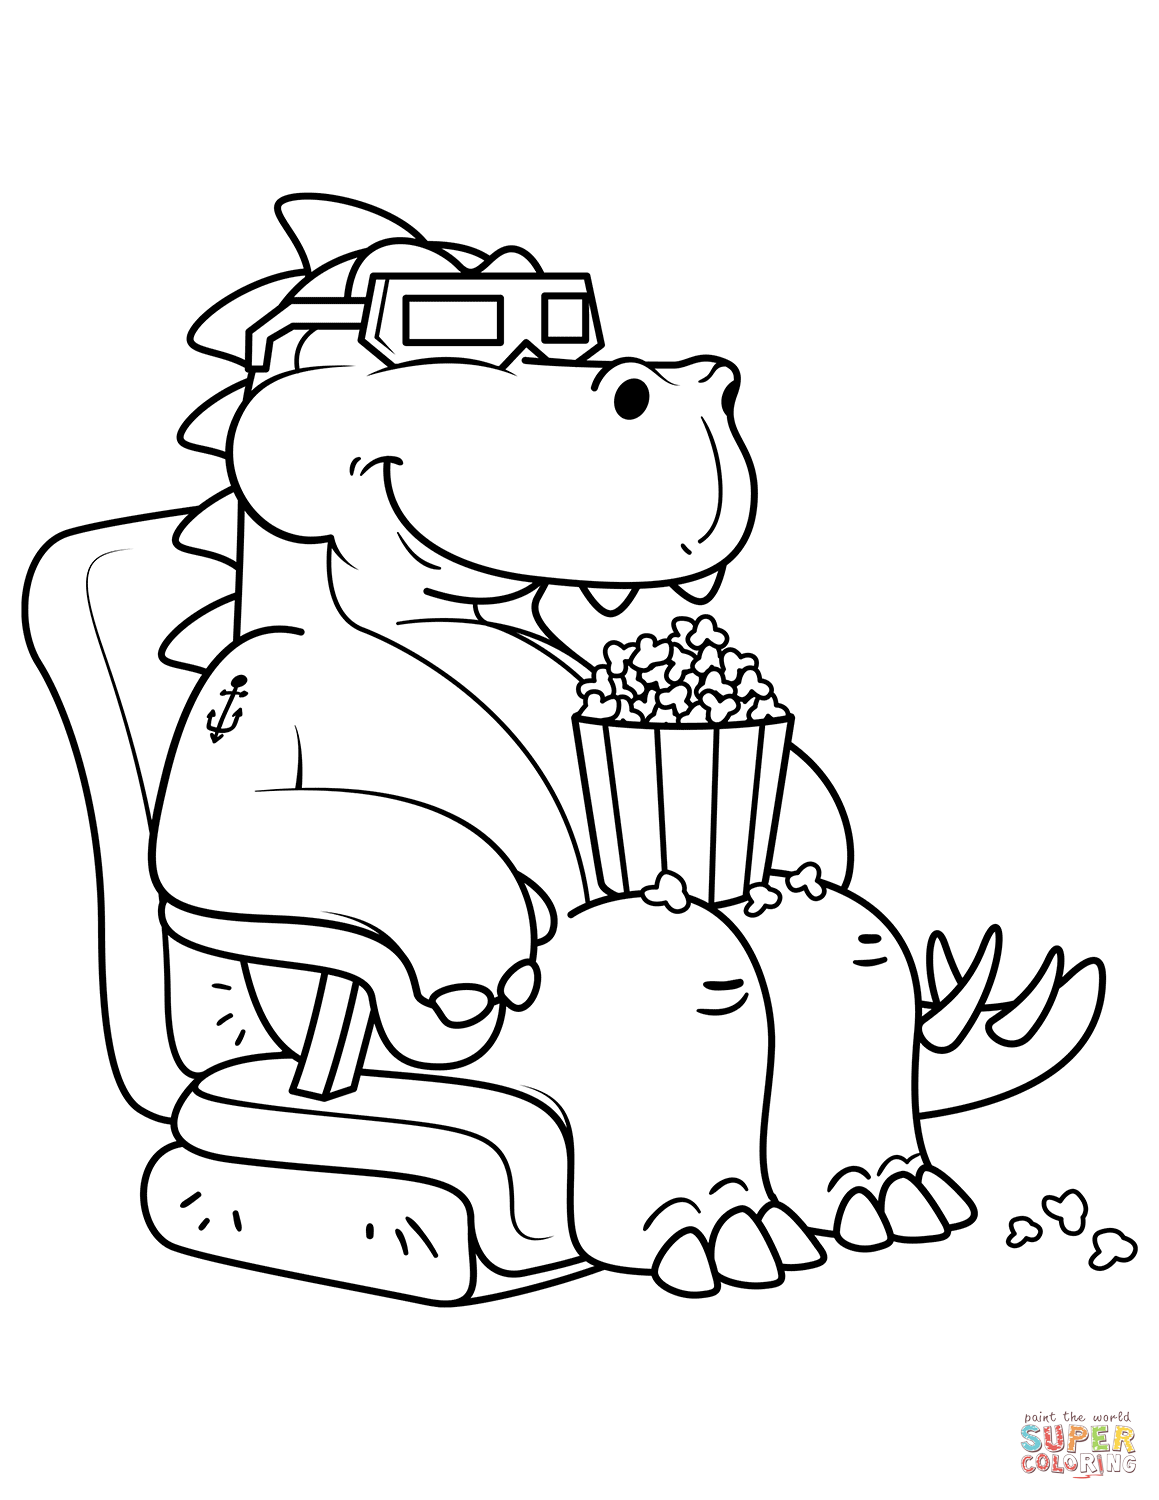 Tyrannosaurus Eating The Popcorn In The Cinema Coloring